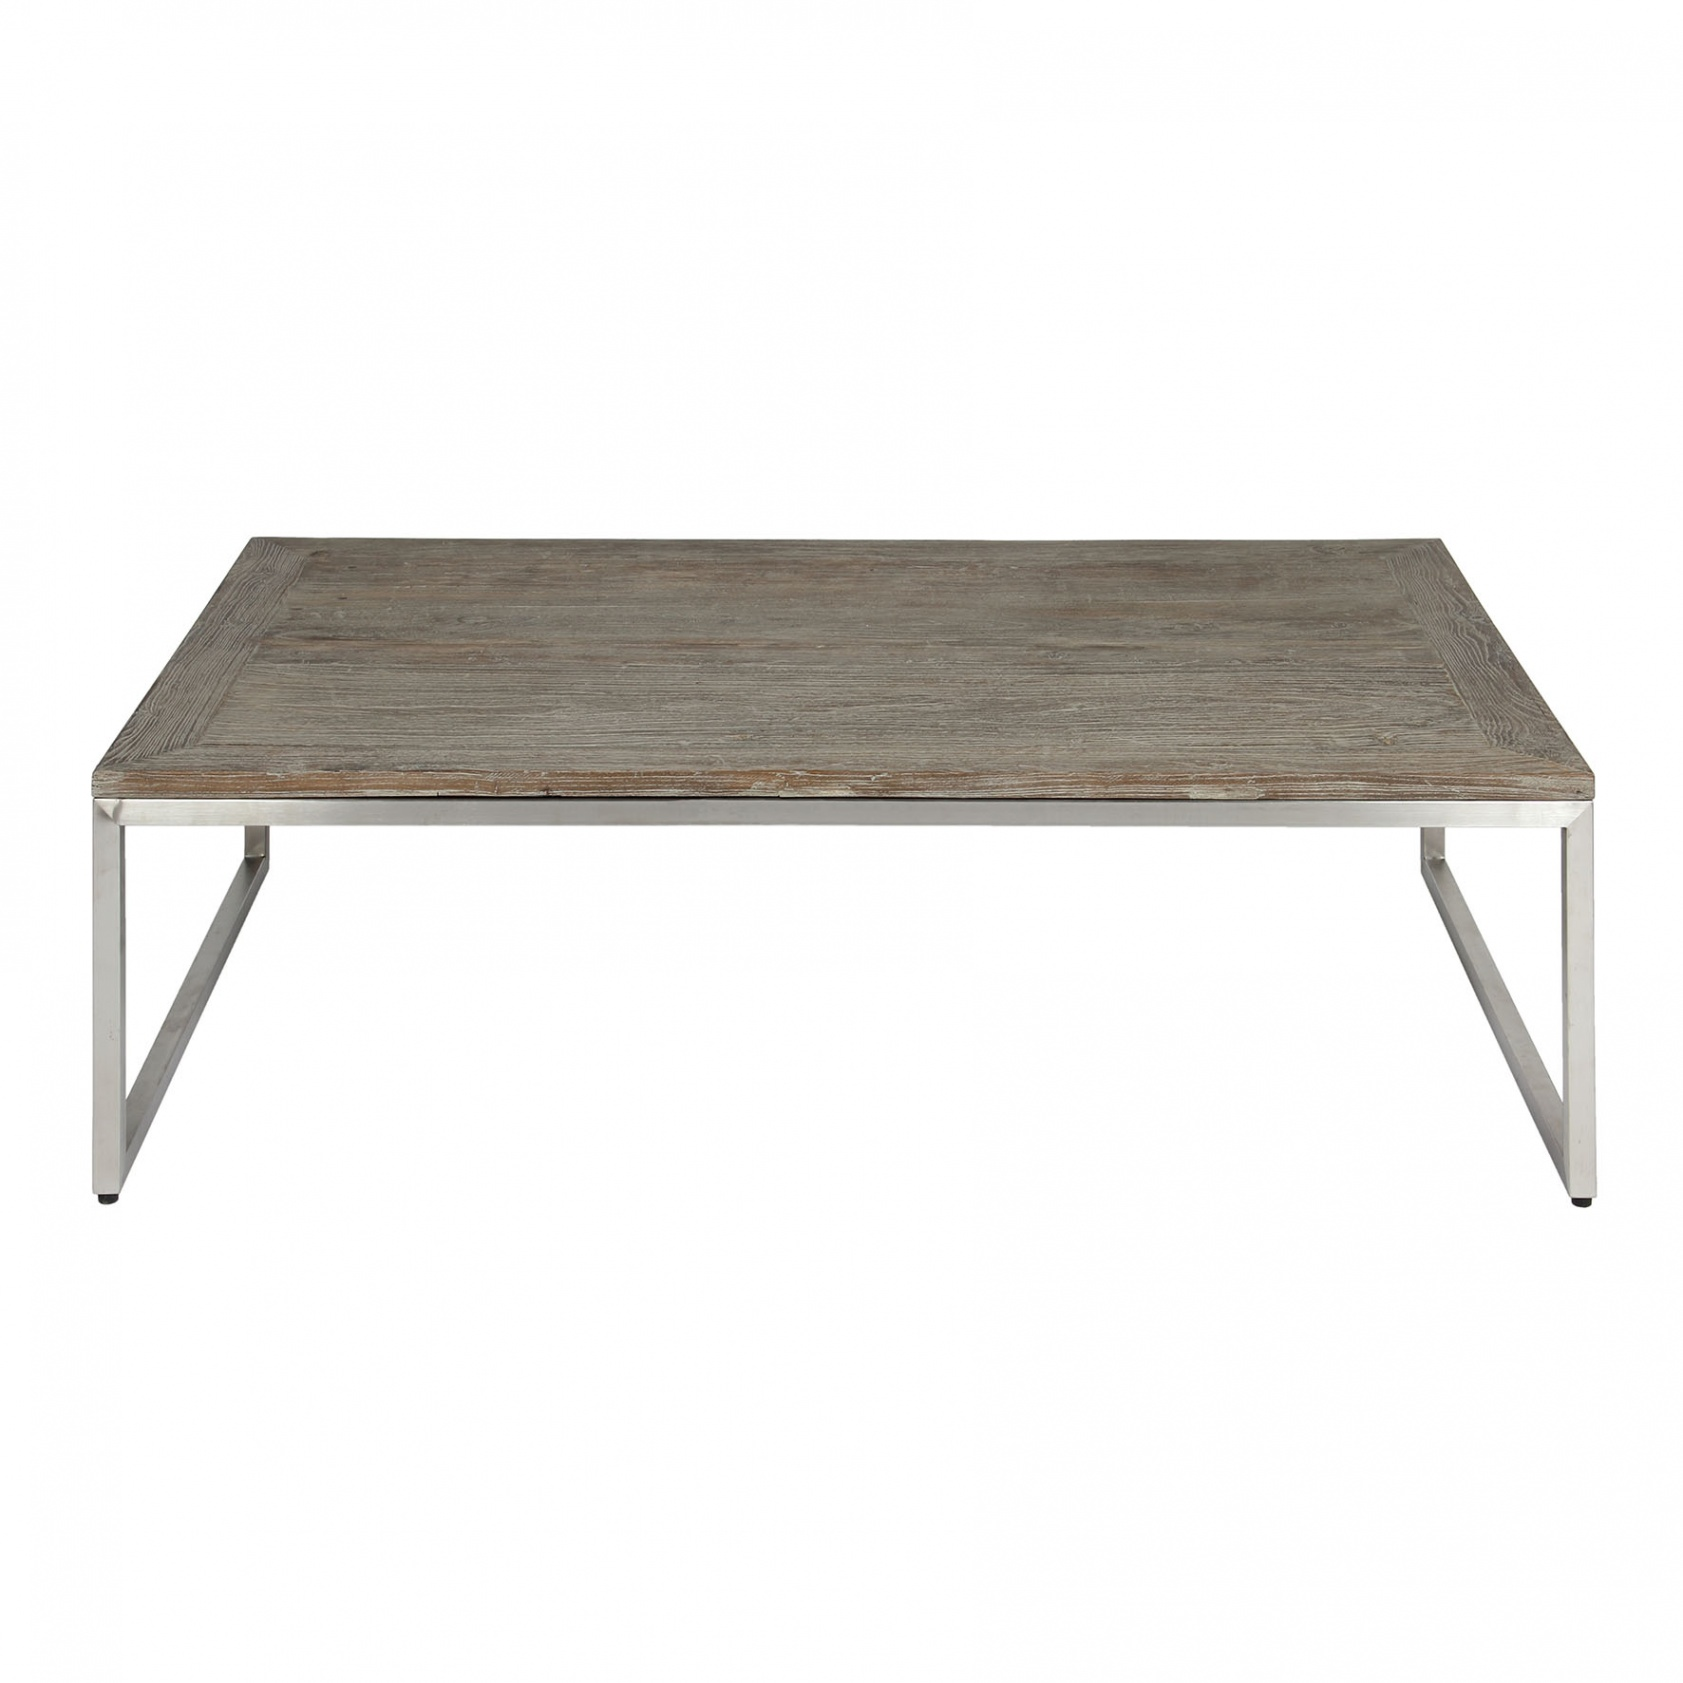 Table Basse Style Campagne Table Basse Style Campagne Chic Frais